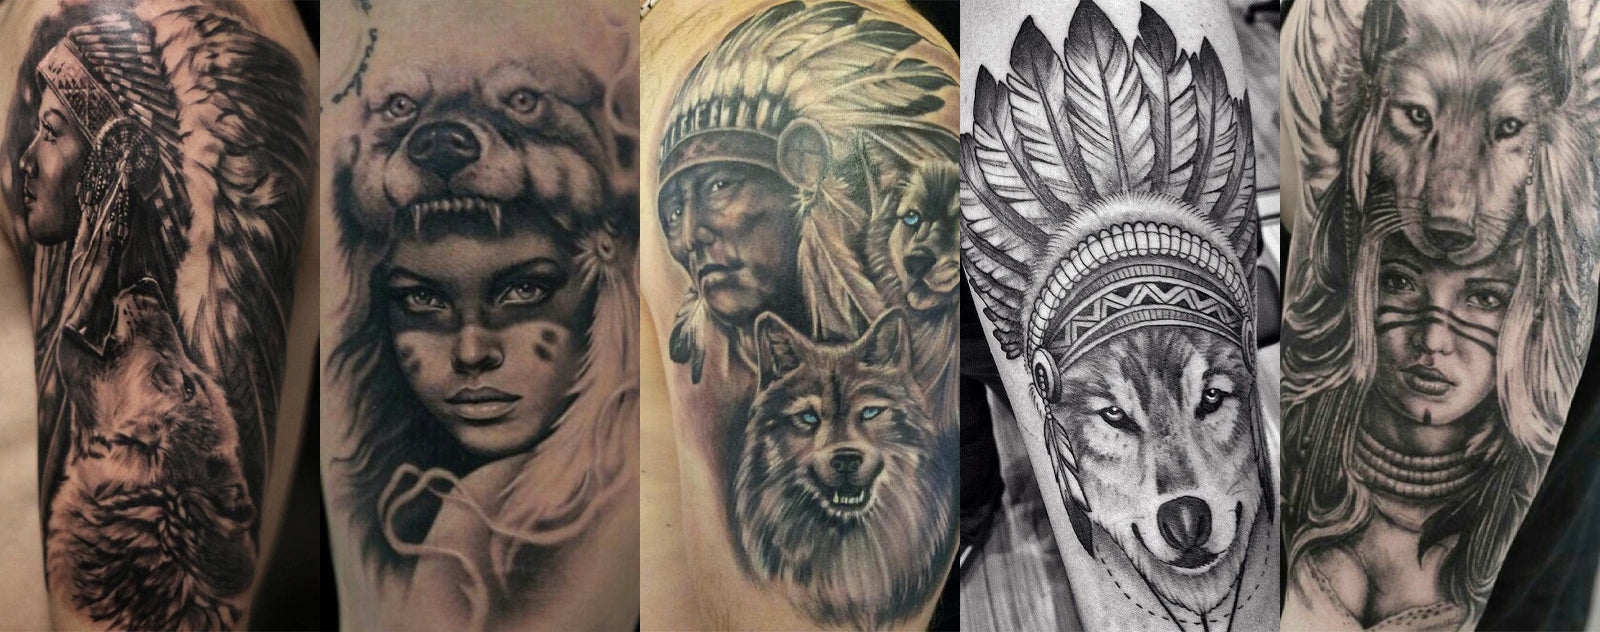 Tatouage Loup Indien Signification